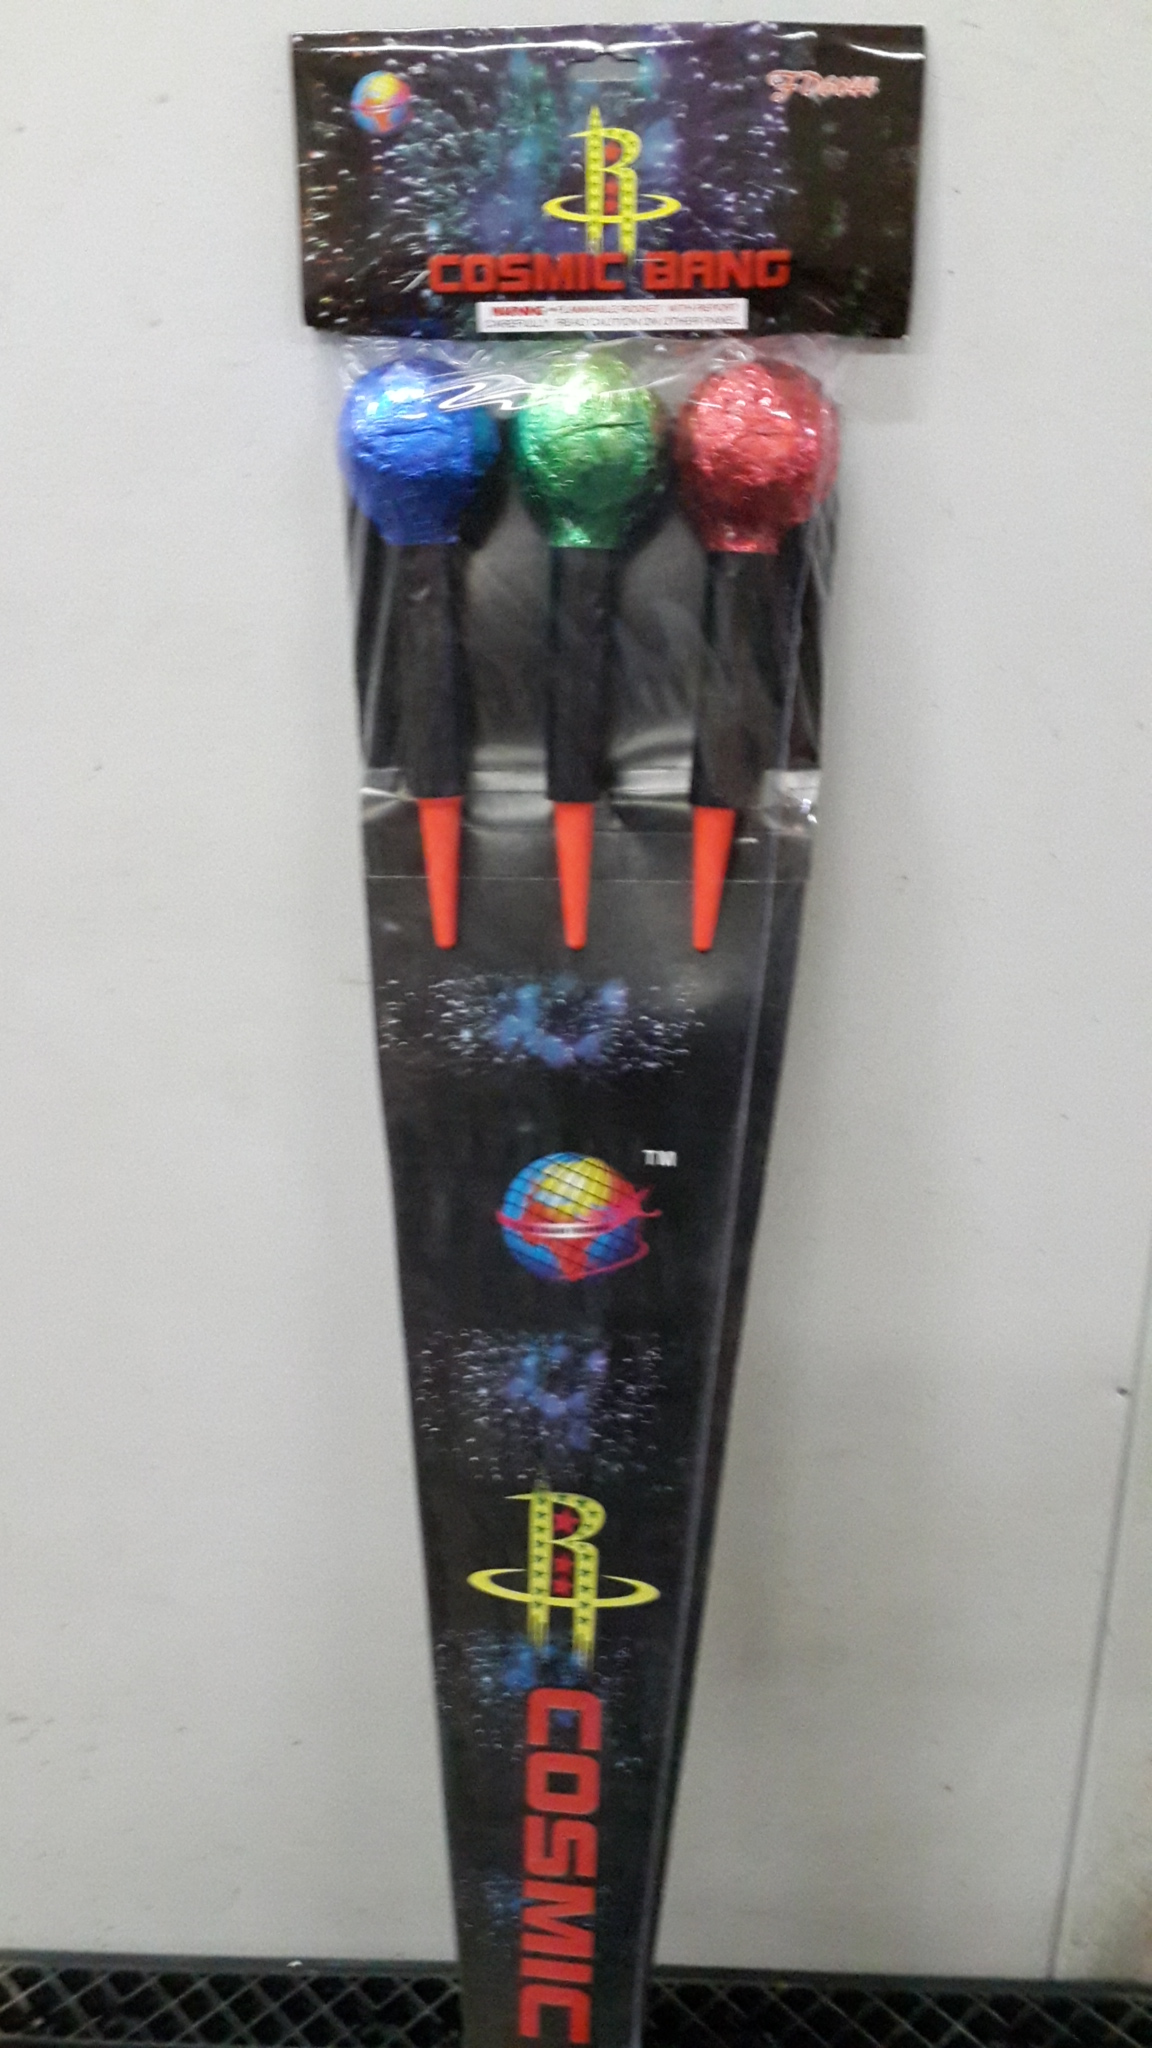 Cosmic Bang Rockets 3-Pack